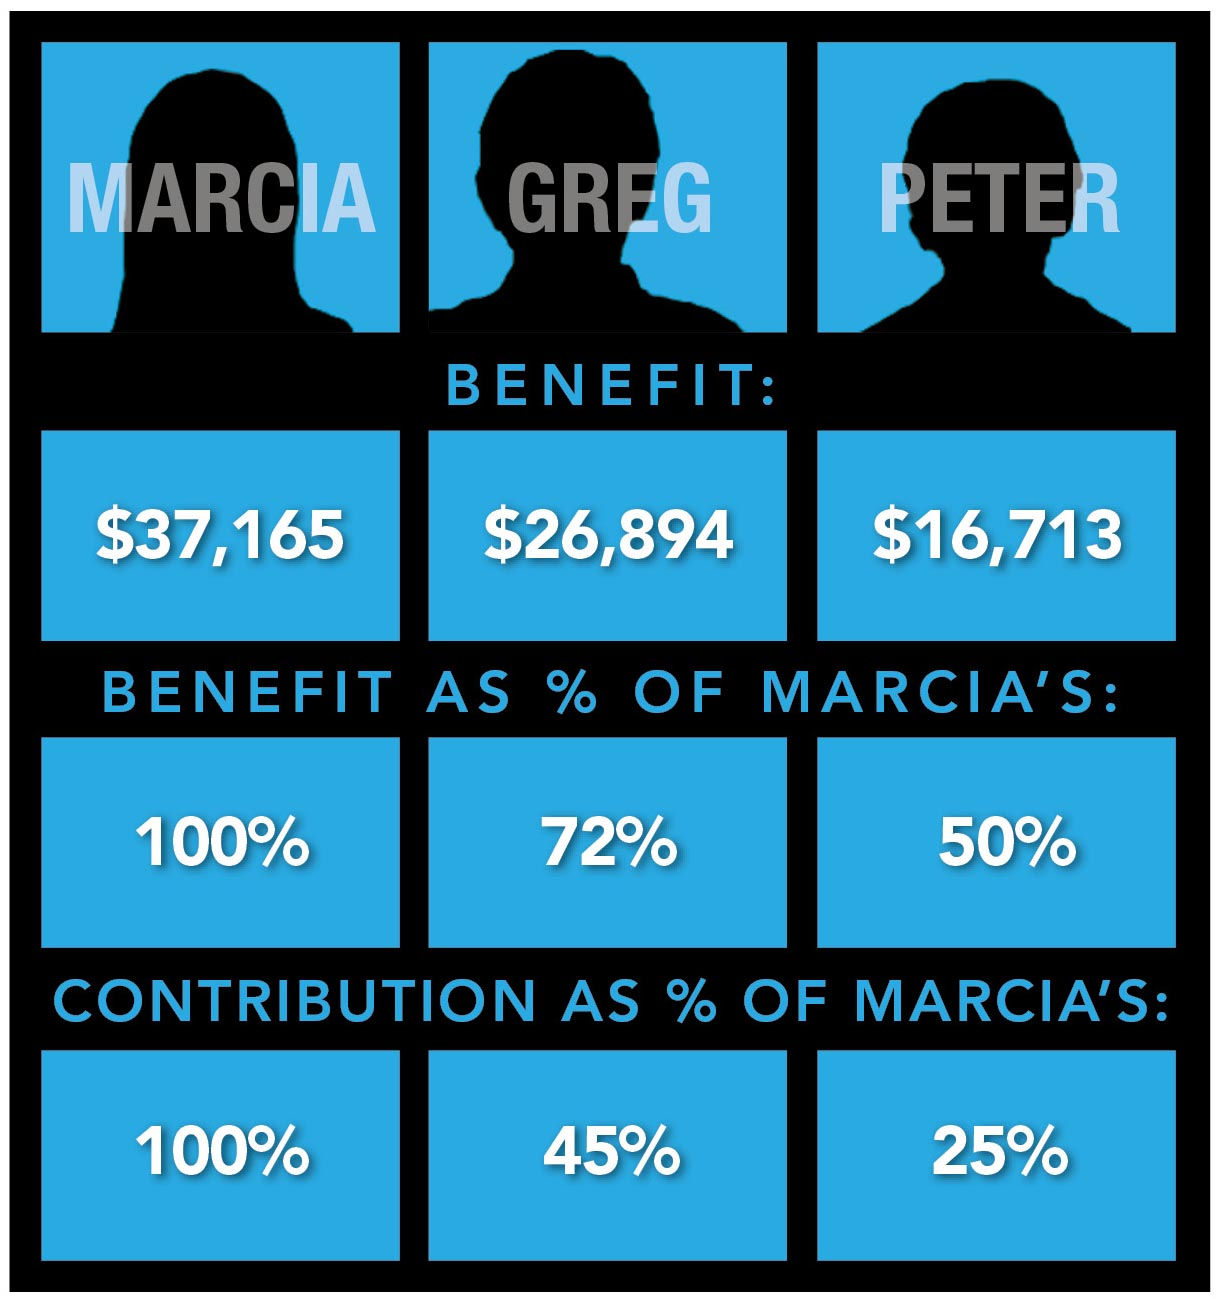 Yearly Social Security Benefits for Marcia, Greg, and Peter at Full Retirement in 2027